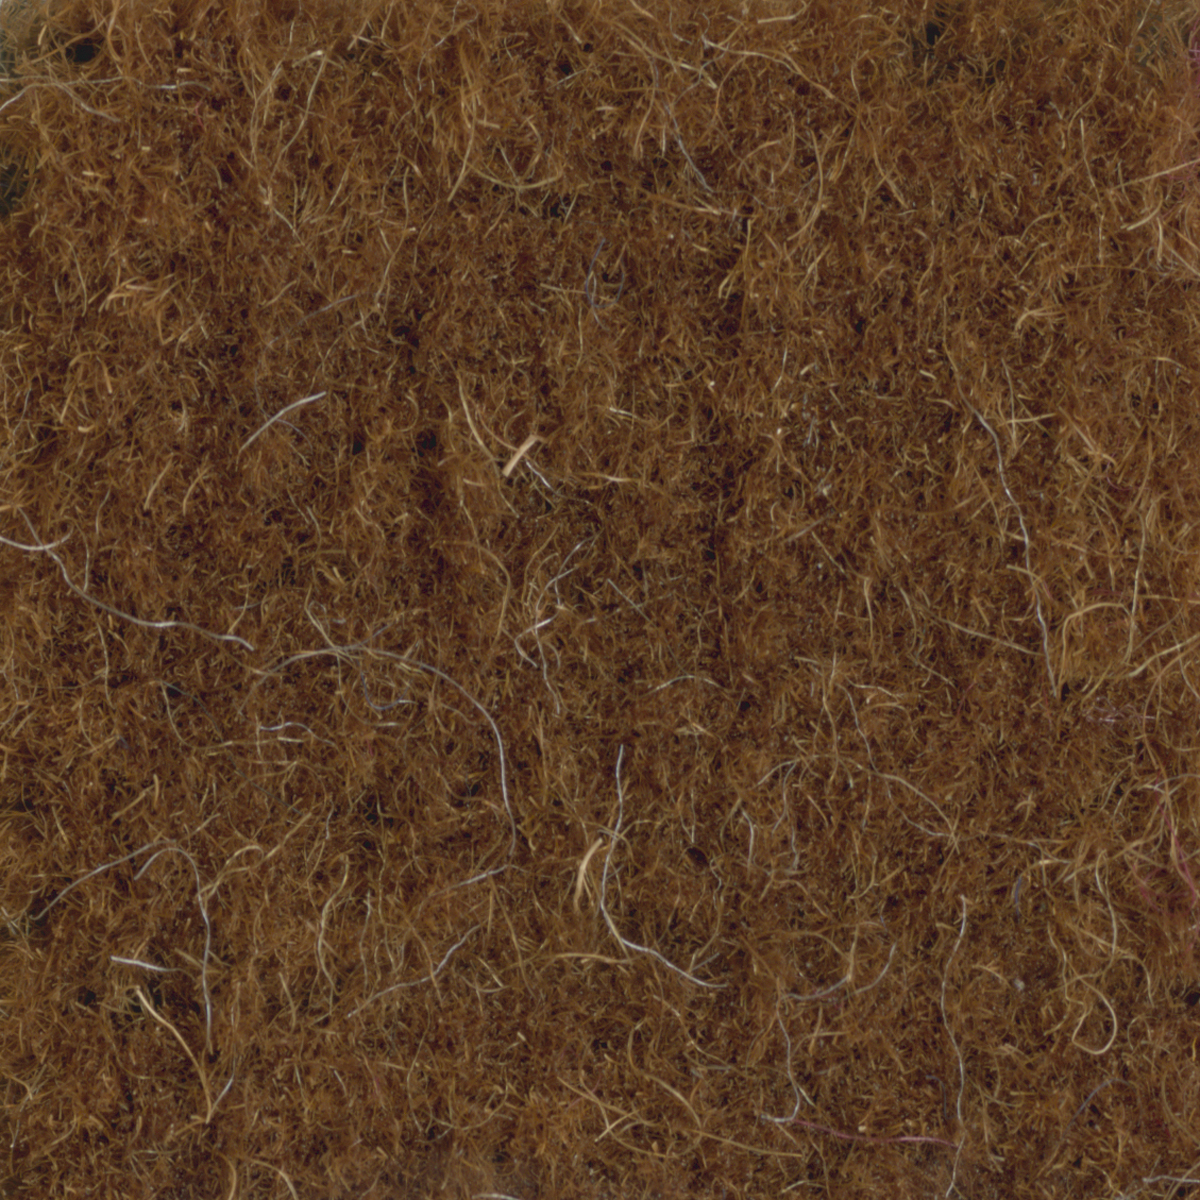 CINNAMON ENGLISH WILTON II WOOL CARPET